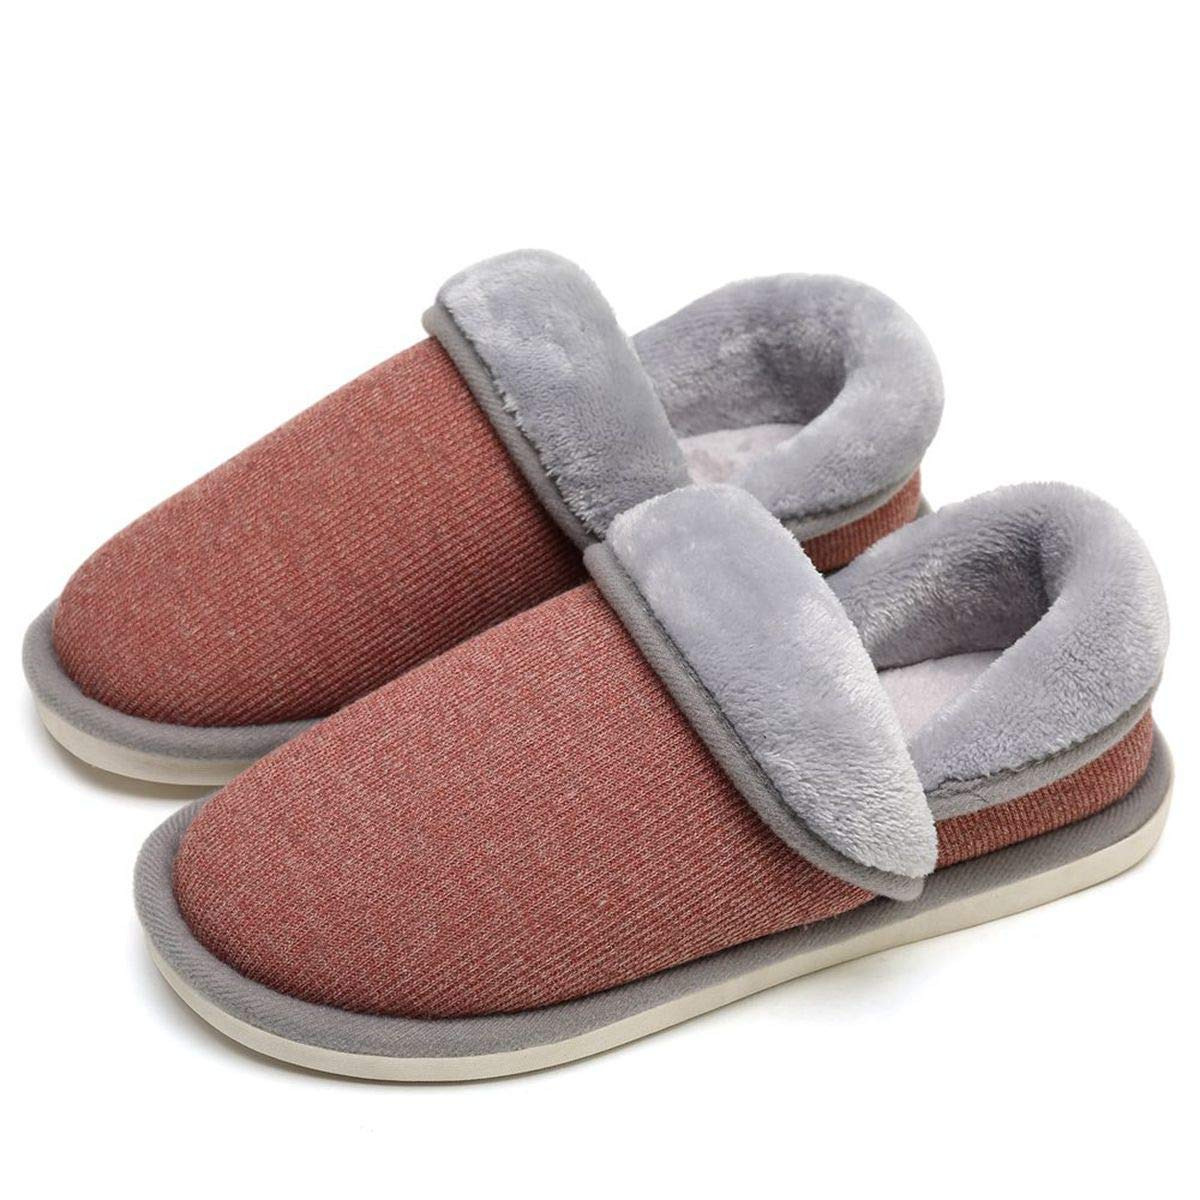 SOSUSHOE Unisex Cozy House Slippers, Fluffy Foldable Boots for Winter, Moccasin Slippers Shoes Indoor Outdoor